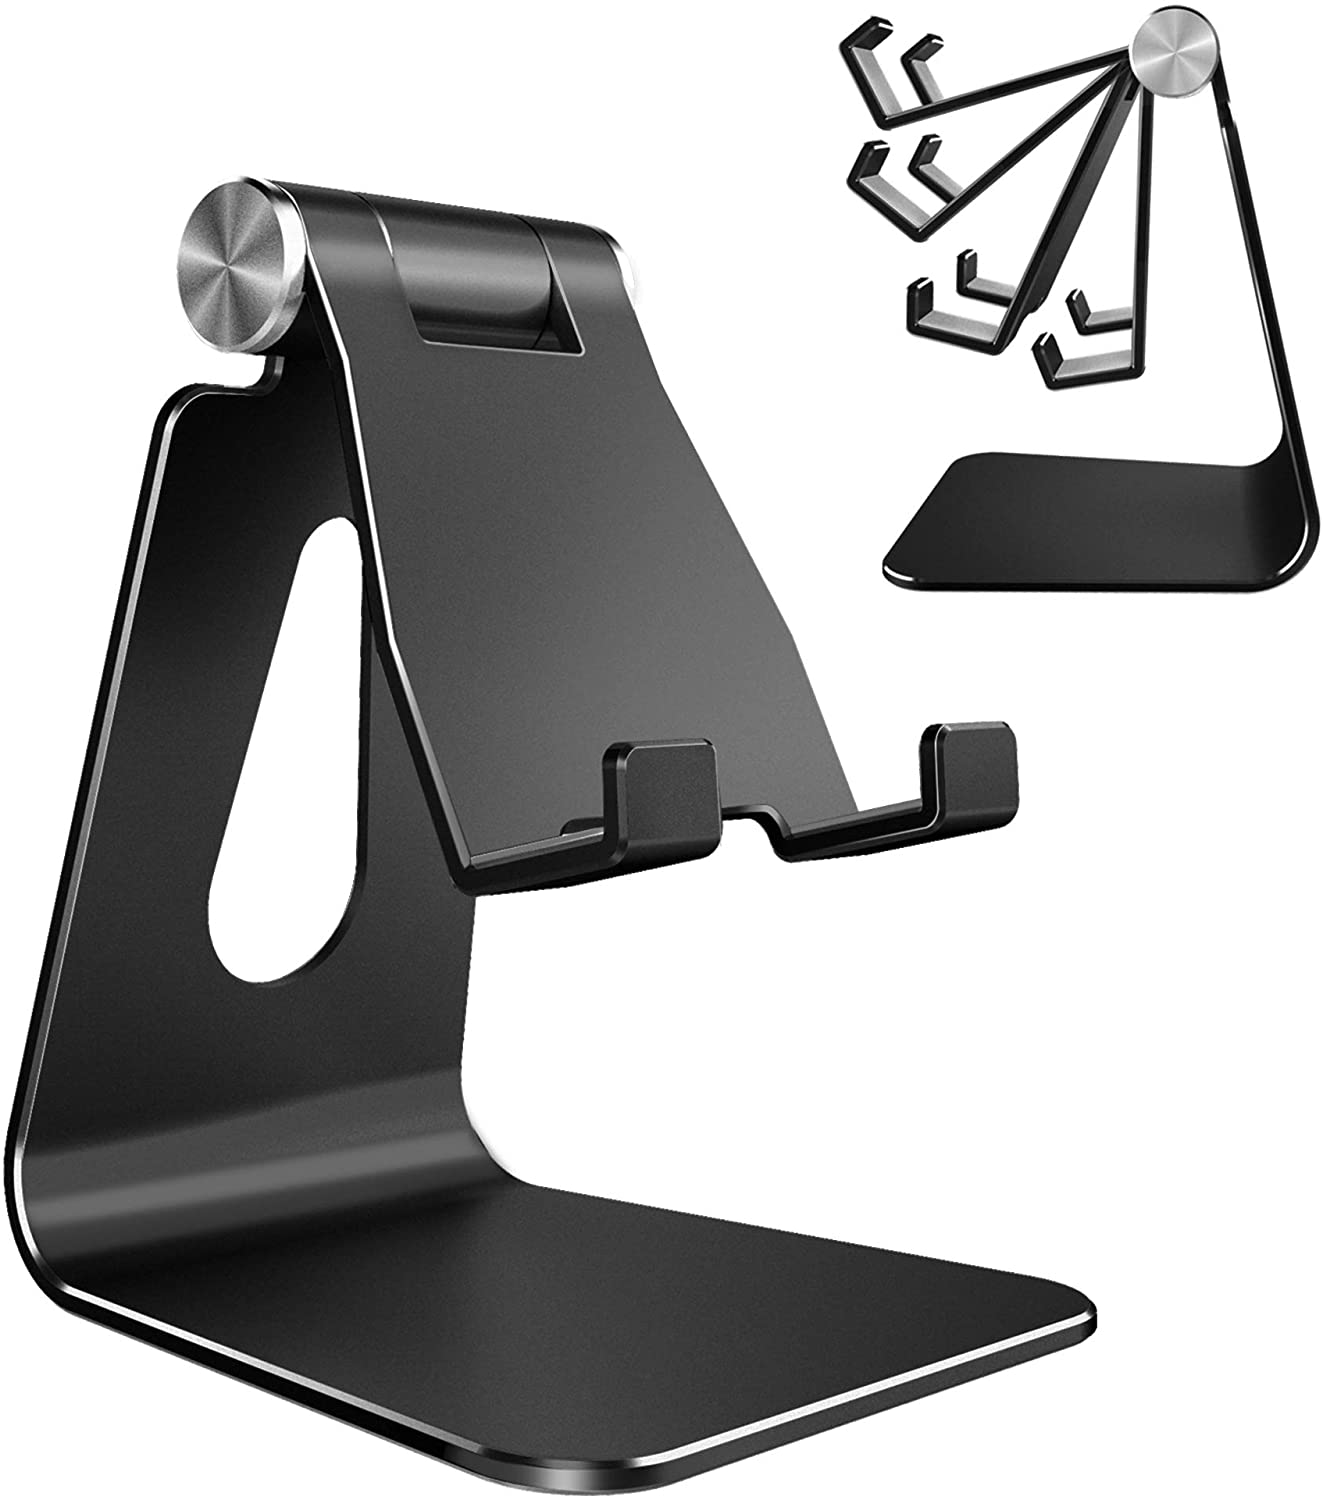 sara-u Phone Holder Tray Dasktop Acrylic Display Stand Mount Bracket Cradle Home Office Compatible with iPhone Samsung Huawei Kindle